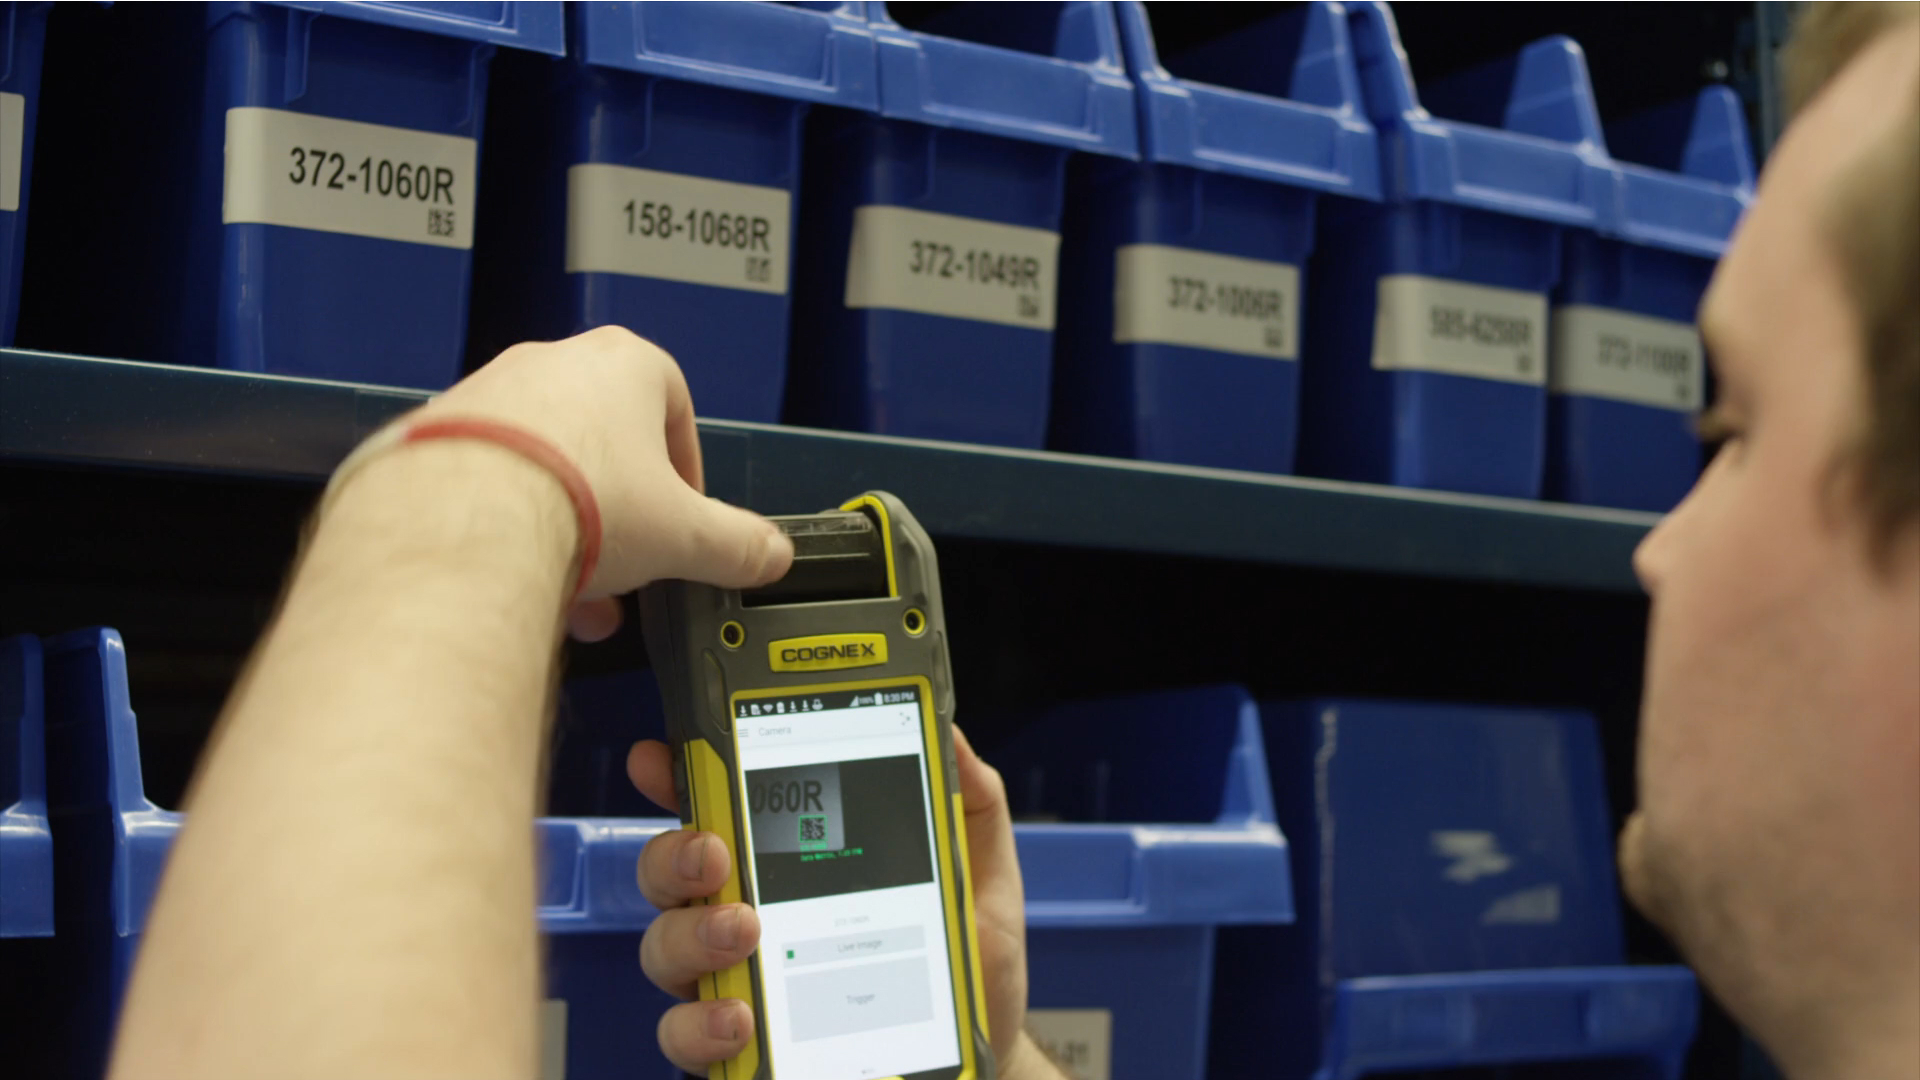 MX-1000 Vision-enabled Mobile Terminal for Logistics Applications